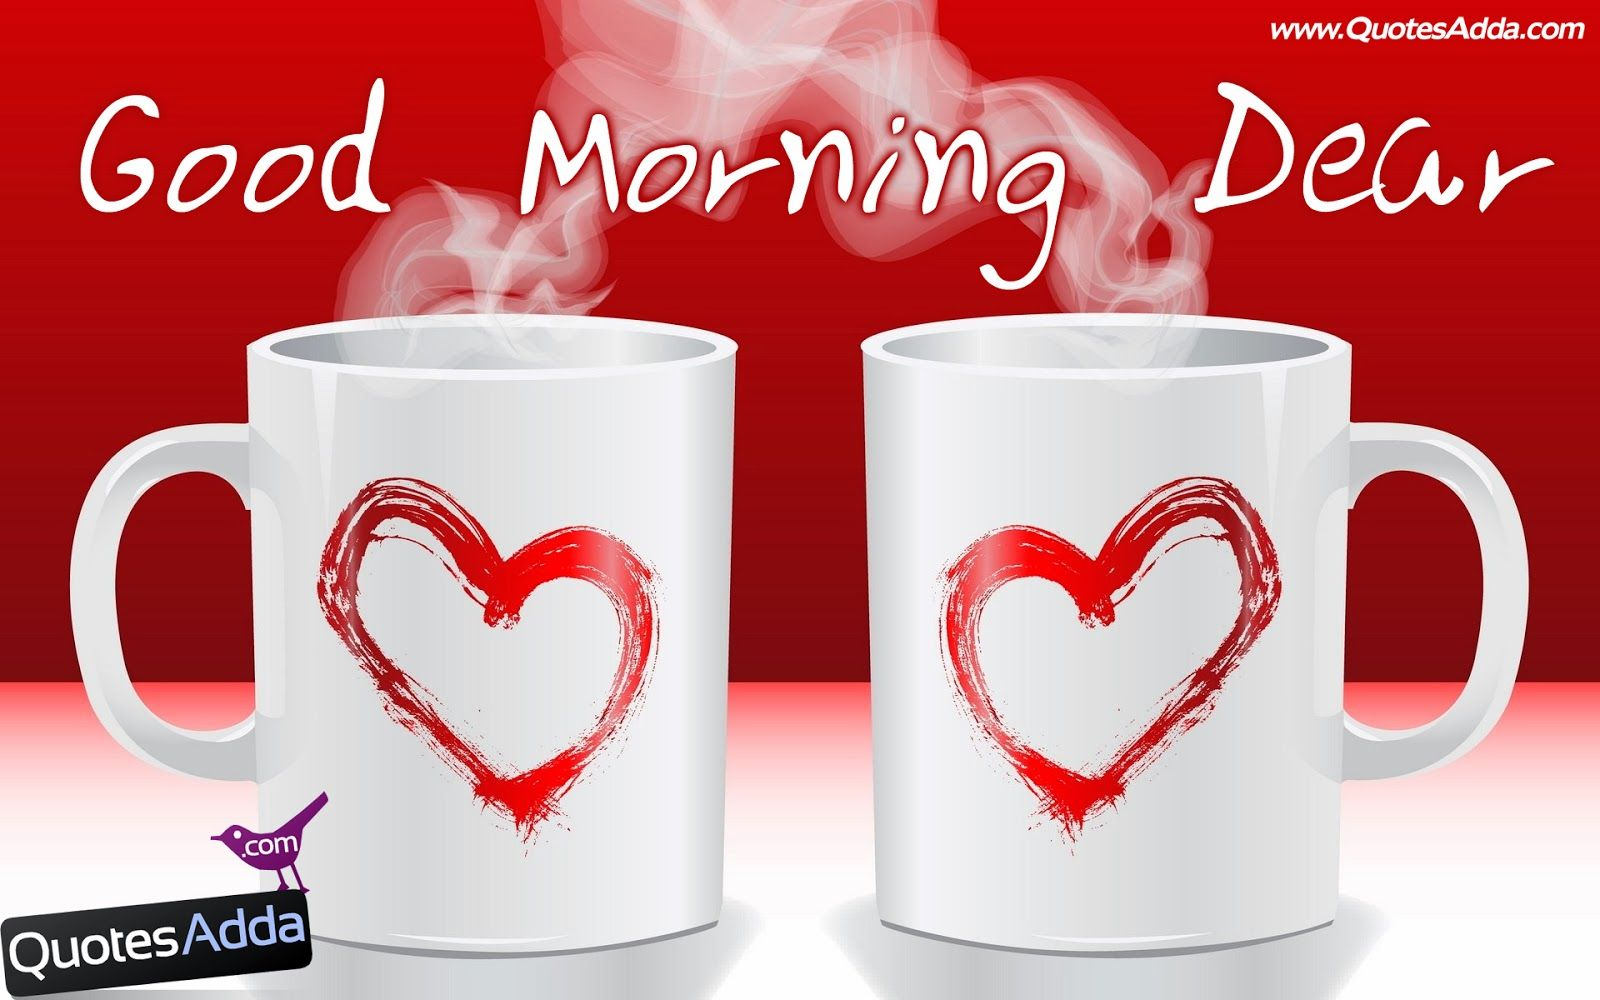 Good Morning Greetings In English For Lovers Quotesaddacom